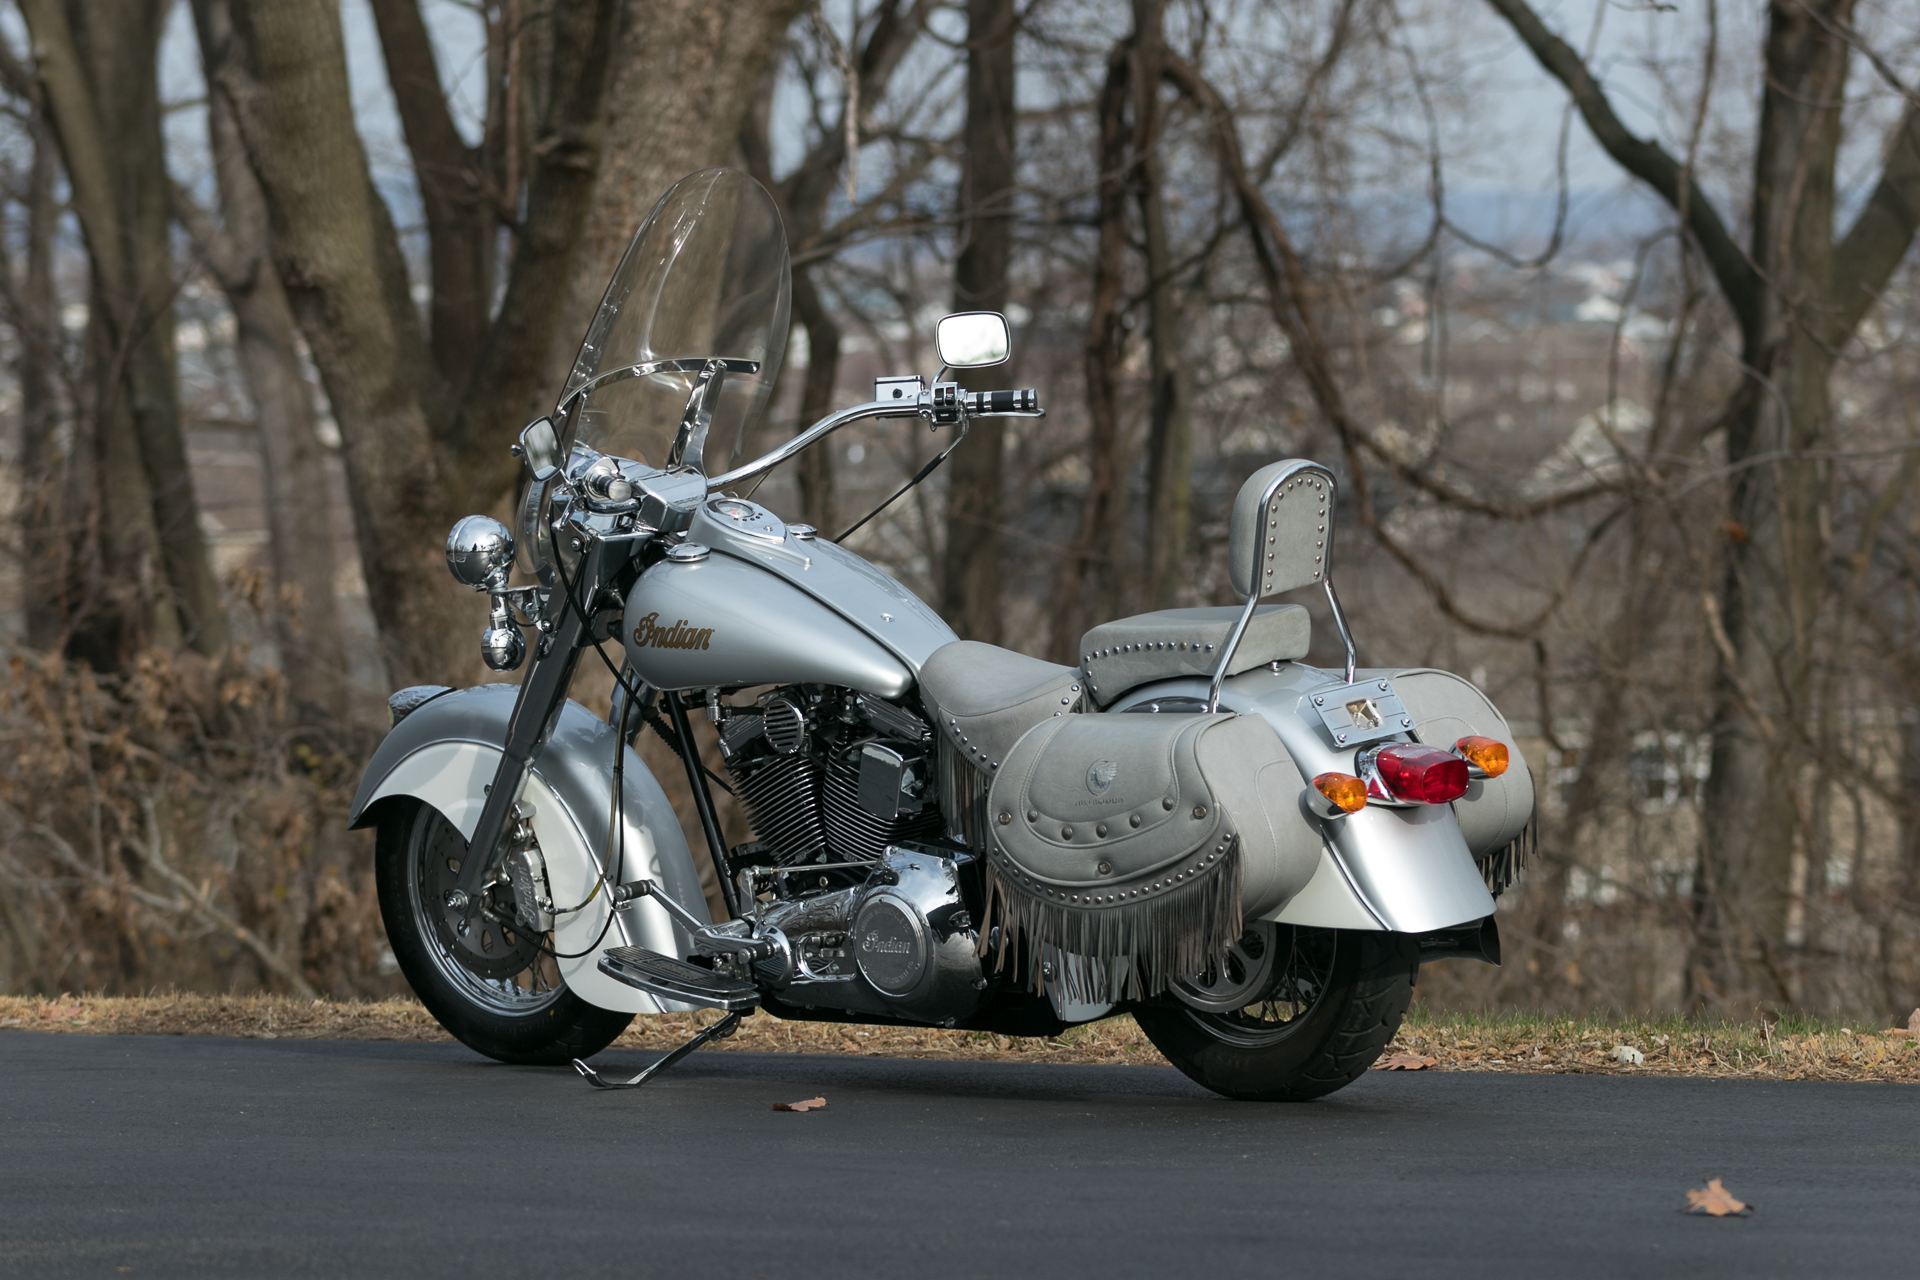 2000 Indian Chief Wiring Diagram Electrical Diagrams 2001 Scout Service Manual User Guide That Easy To Read U2022 Wheels